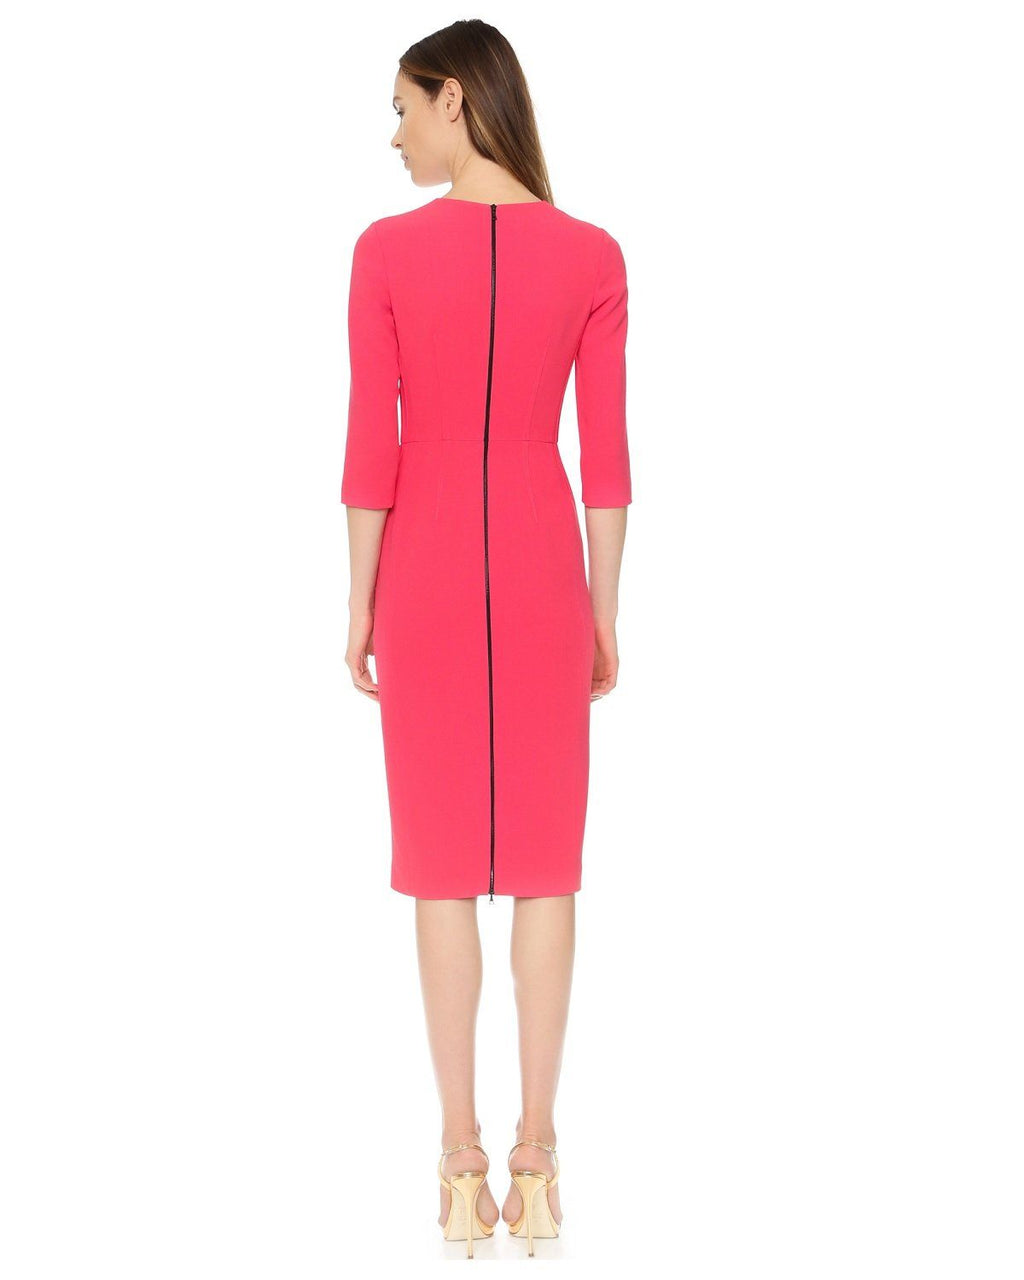 Narciso Rodriguez 3/4 Sleeve Dress